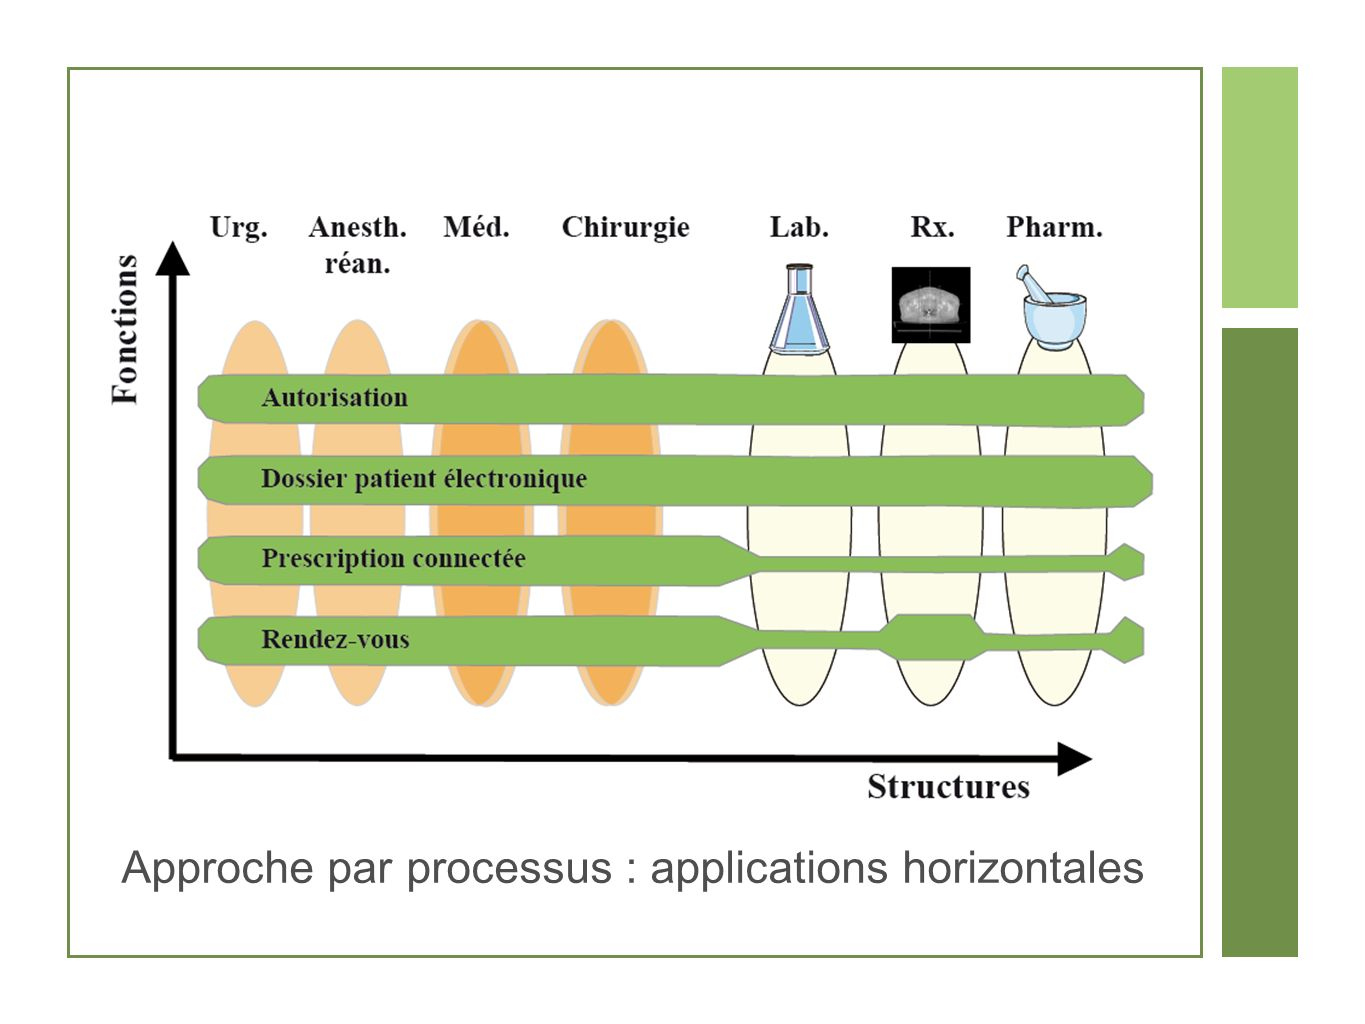 Approche par processus : applications horizontales